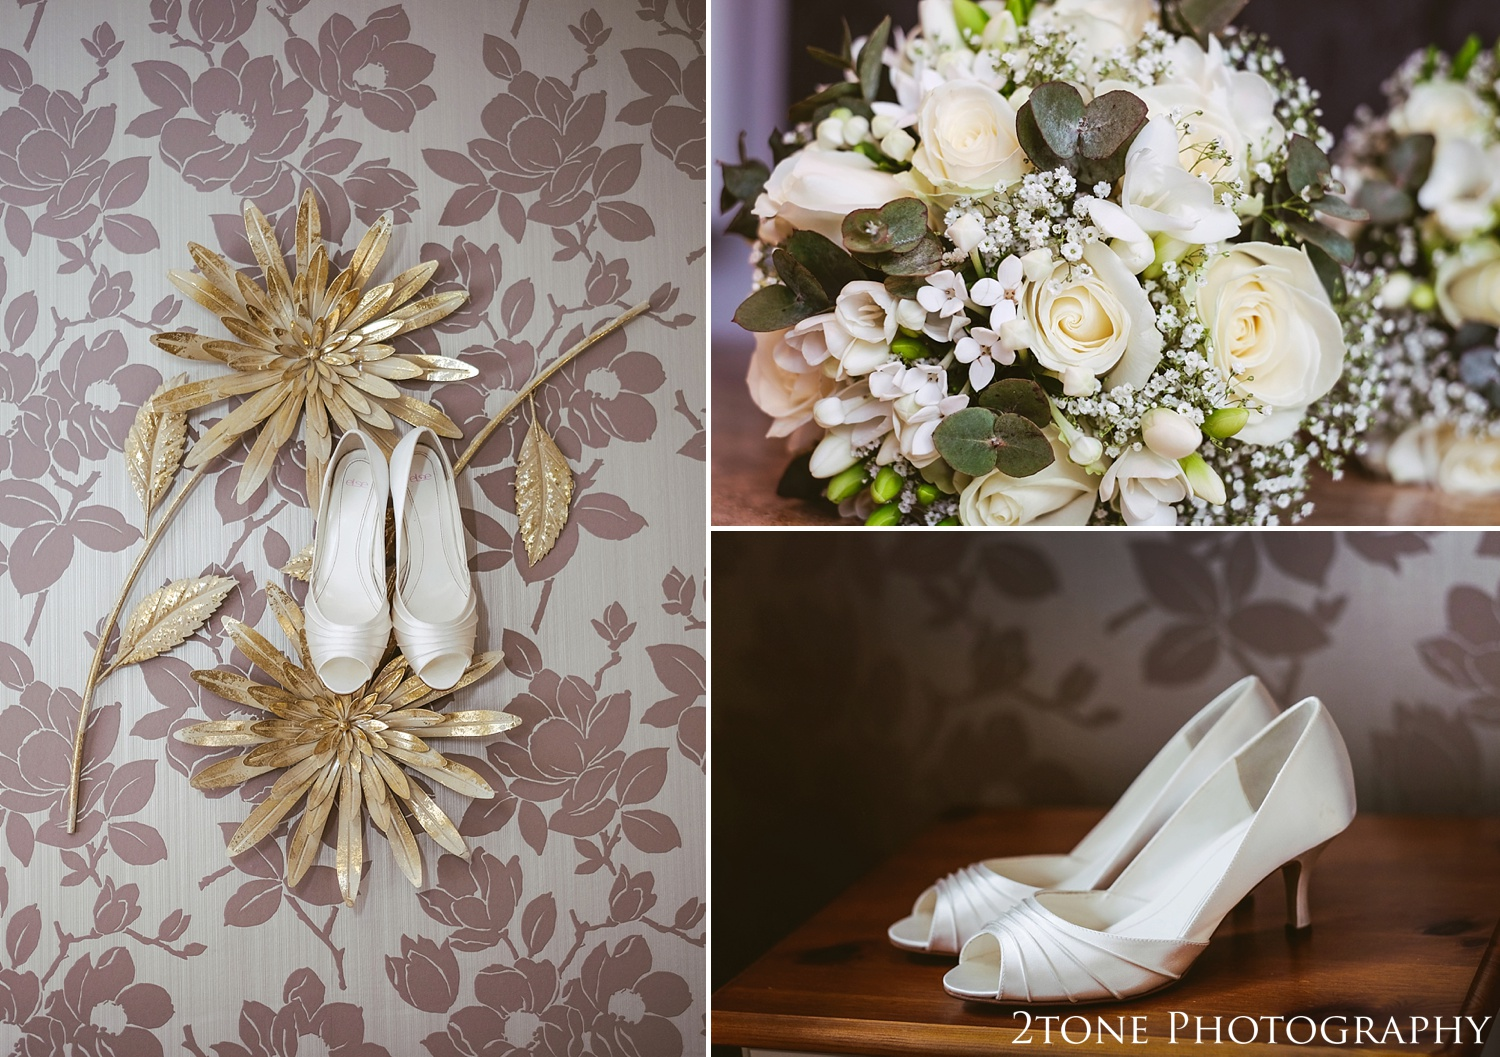 Wedding shoes and flowers by www.2tonephotography.co.uk